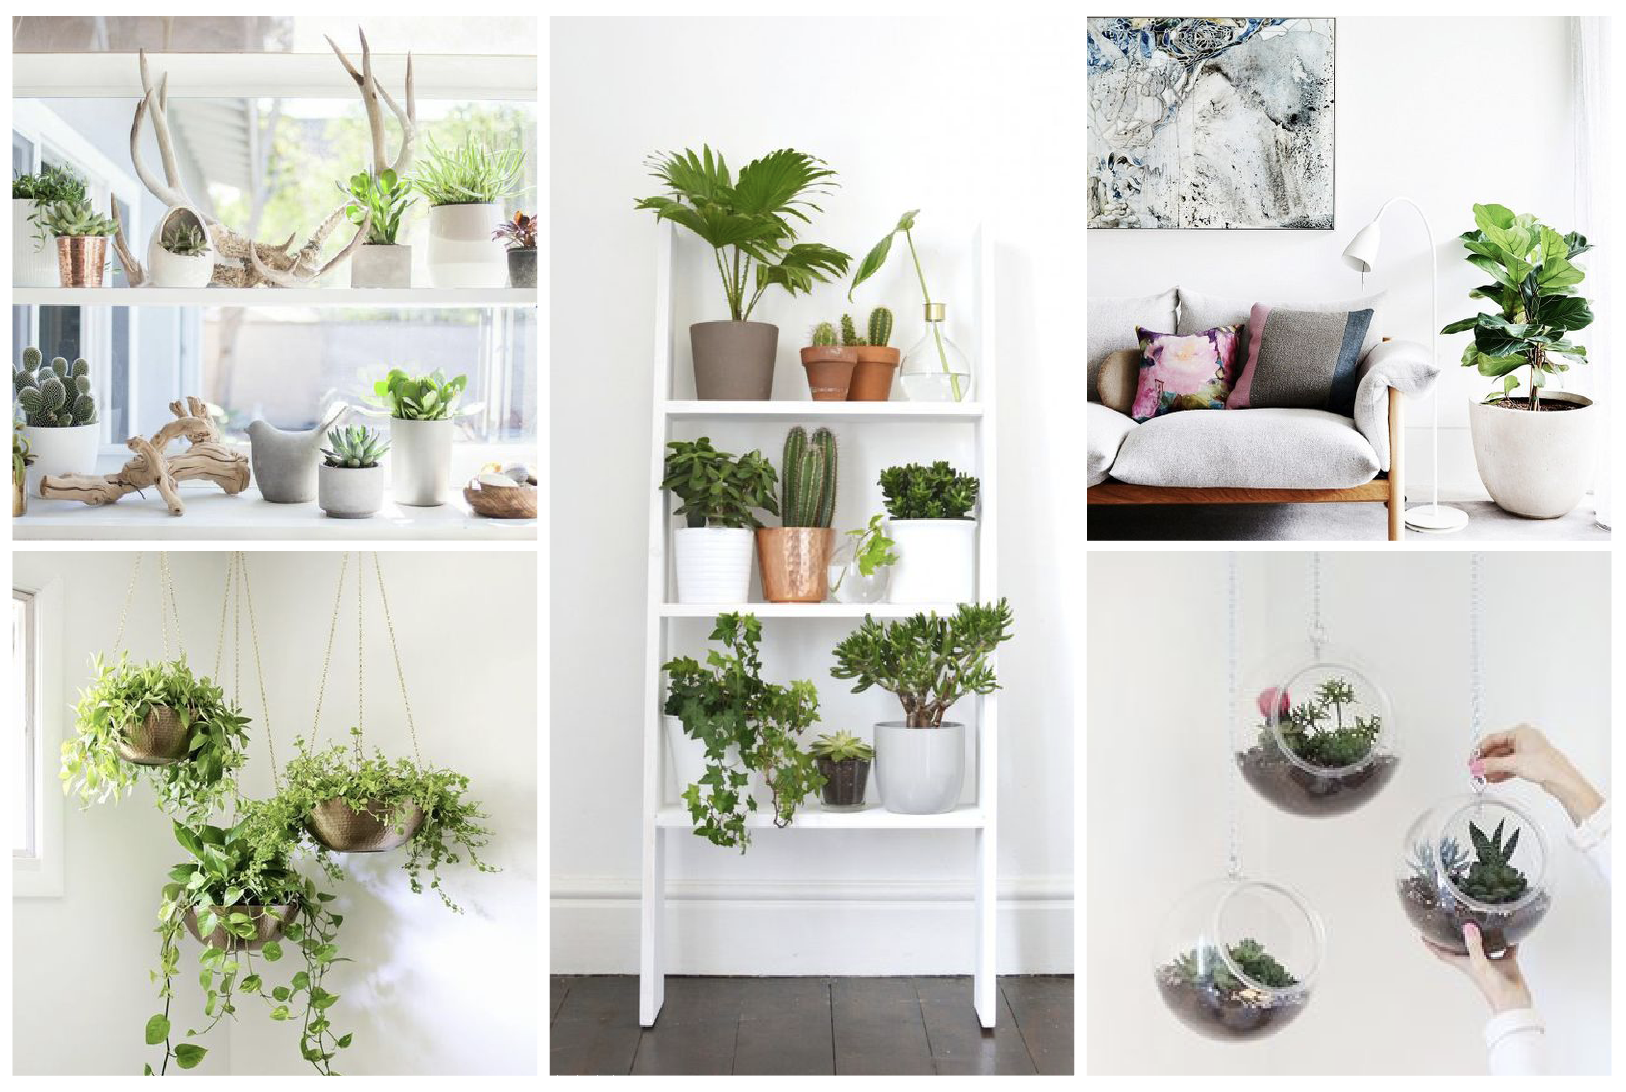 Superb plantes d interieur decoration 11 quand les for Plante design interieur